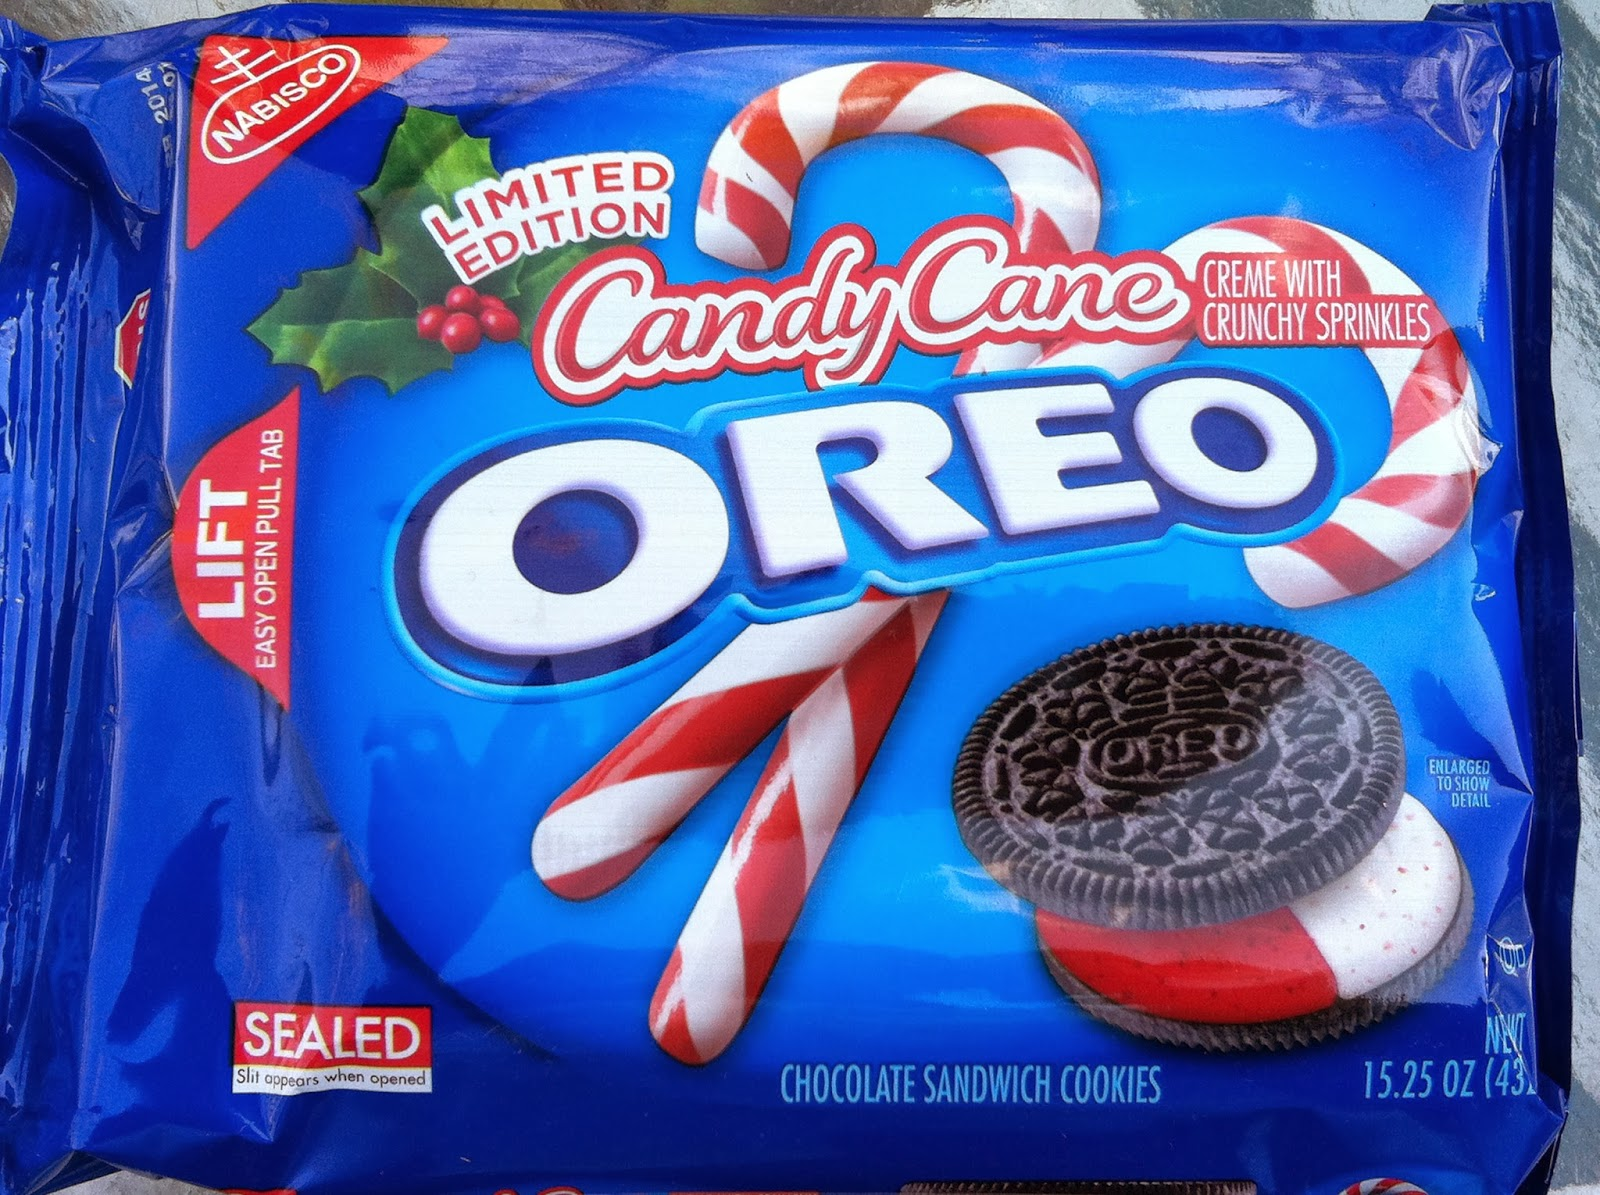 The Holidaze: Candy Cane Oreo Cookies